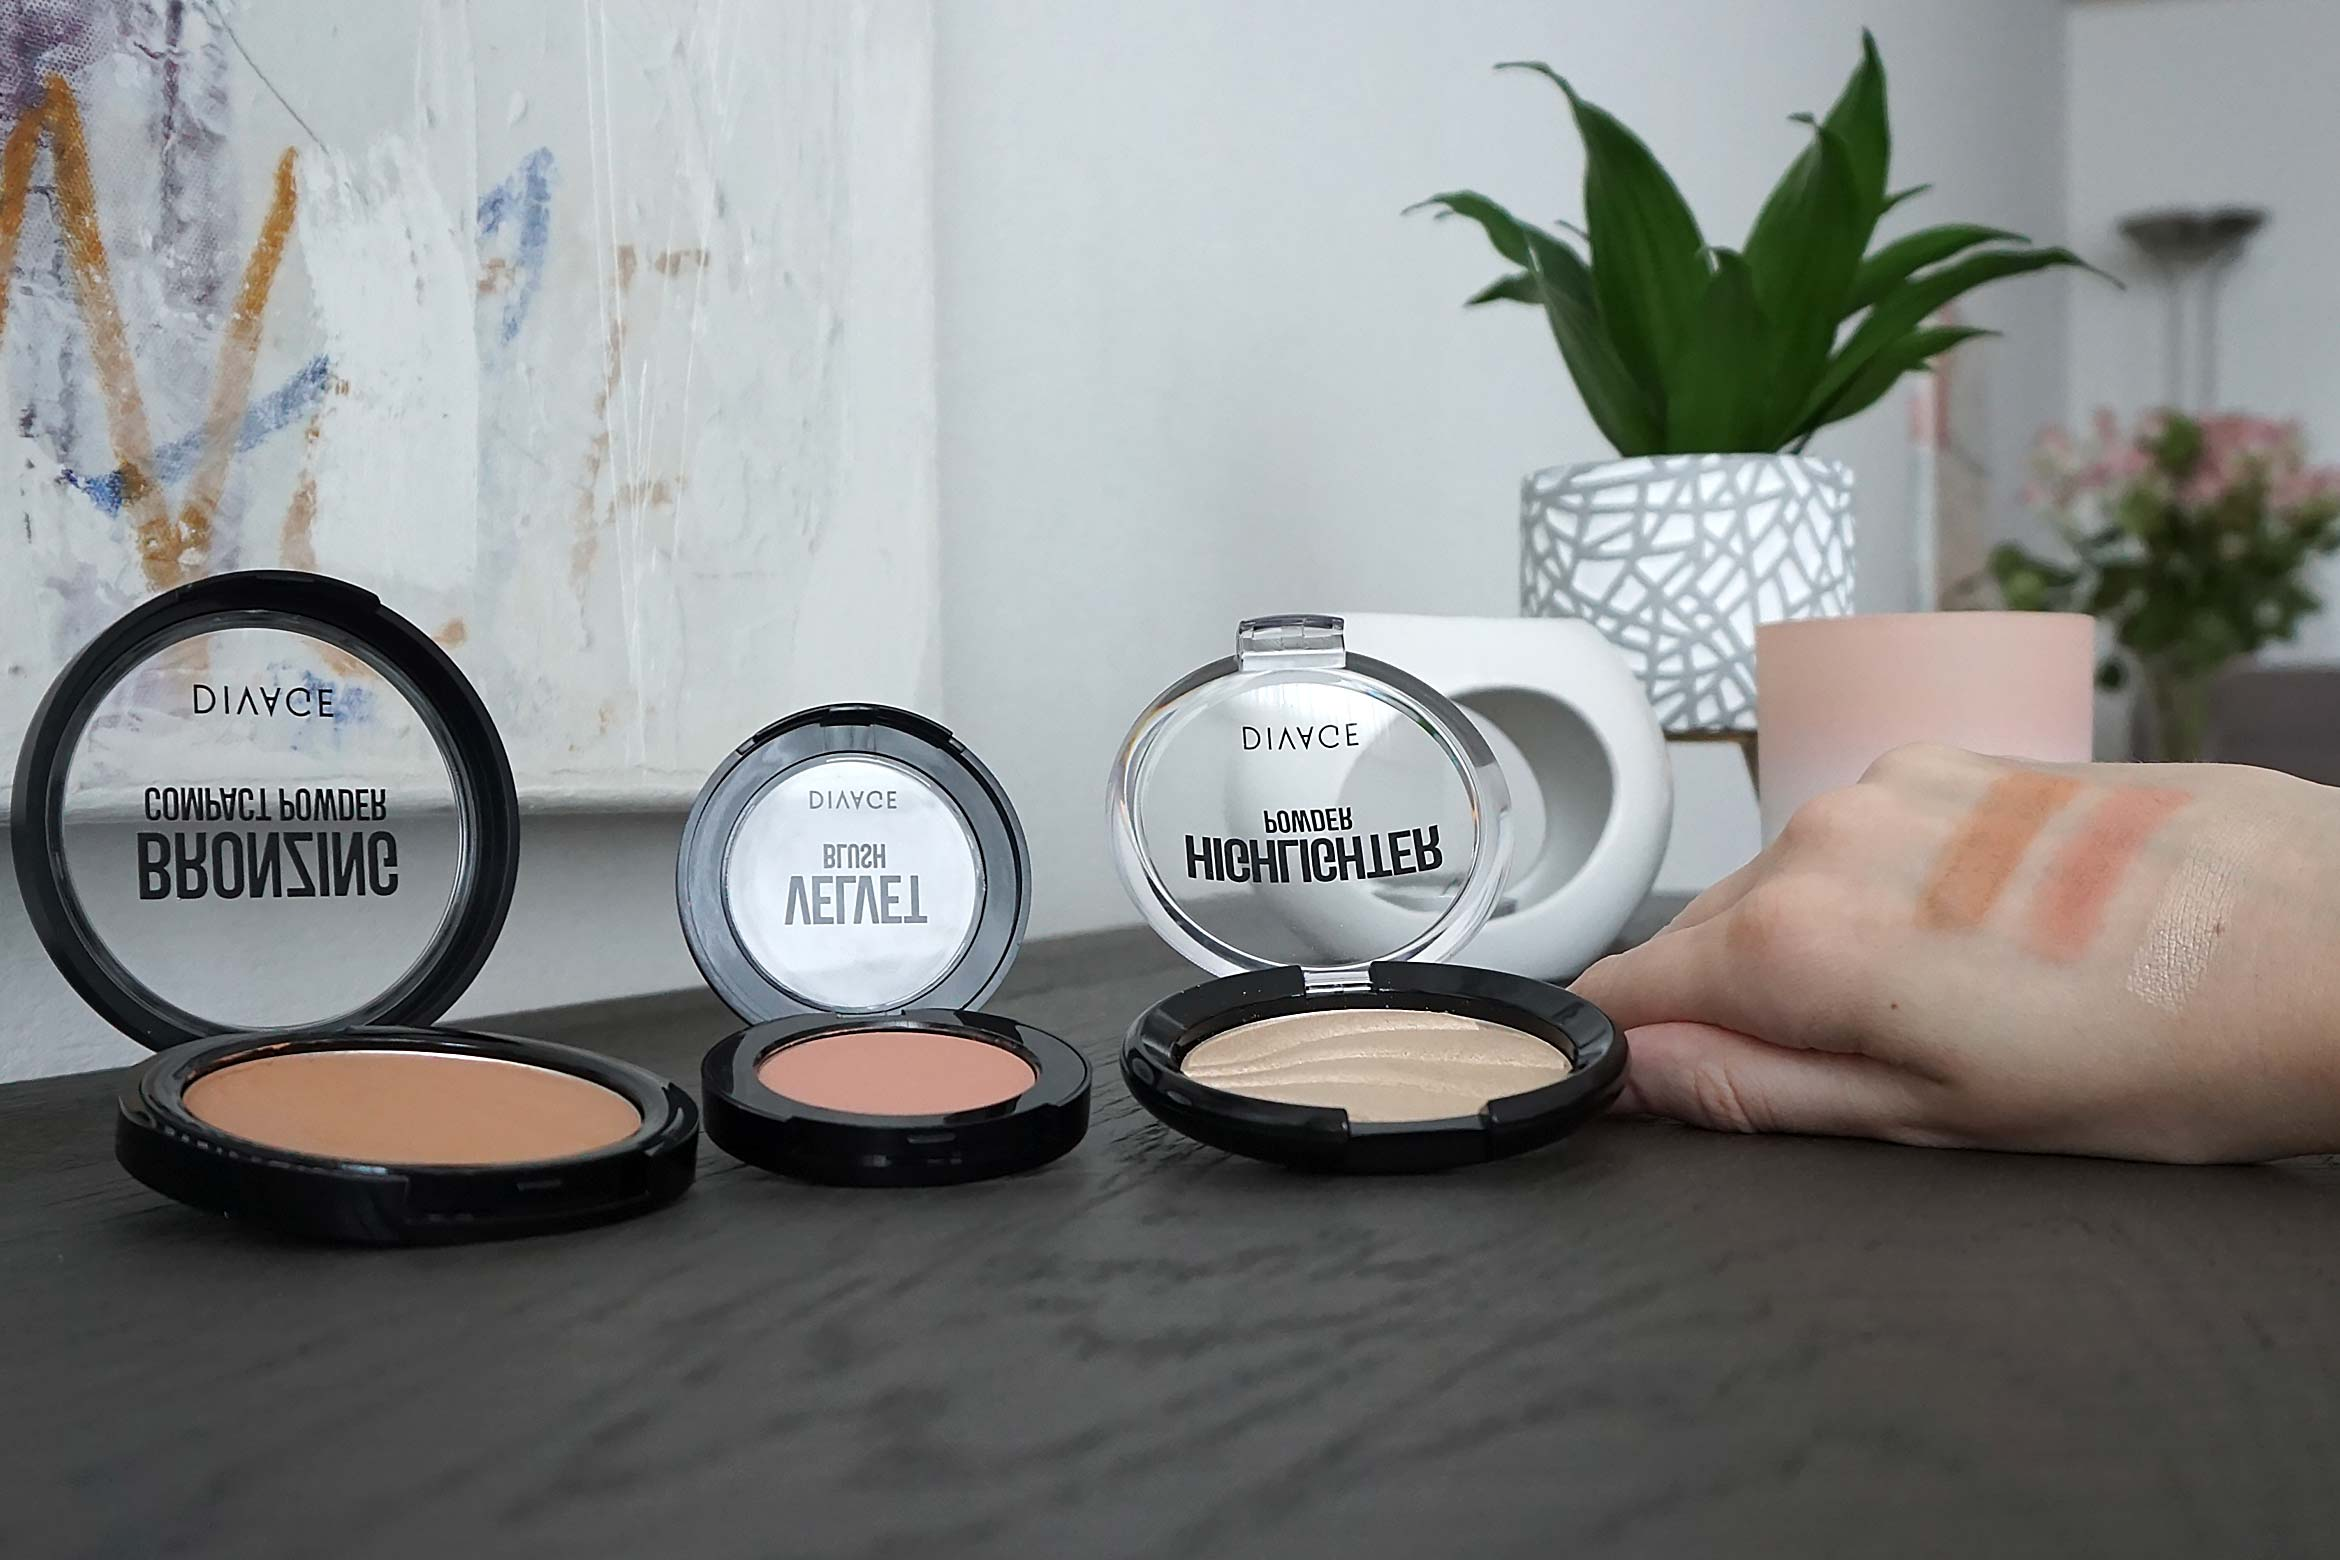 divage blush bronzer highlighter review